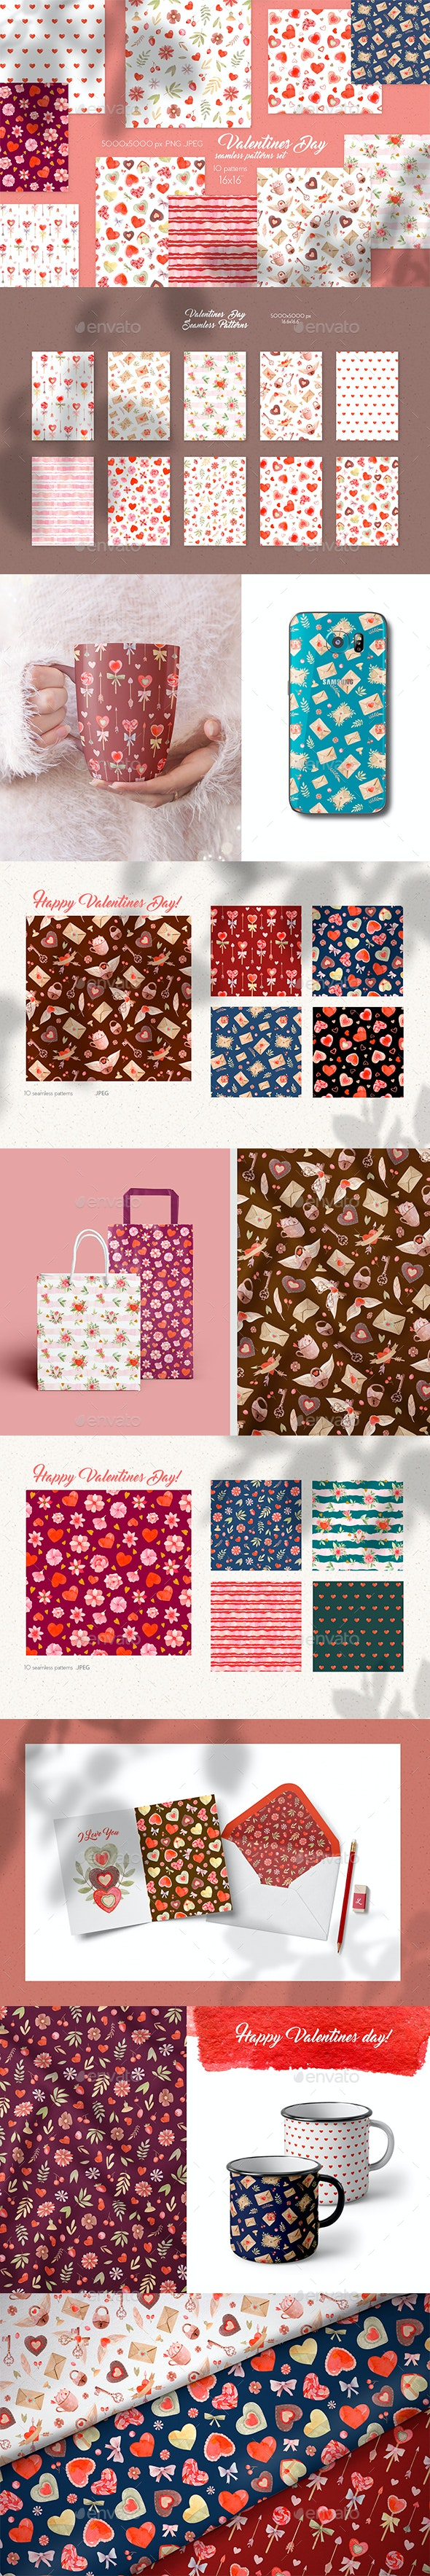 Valentines Day Seamless Patterns - Patterns Backgrounds